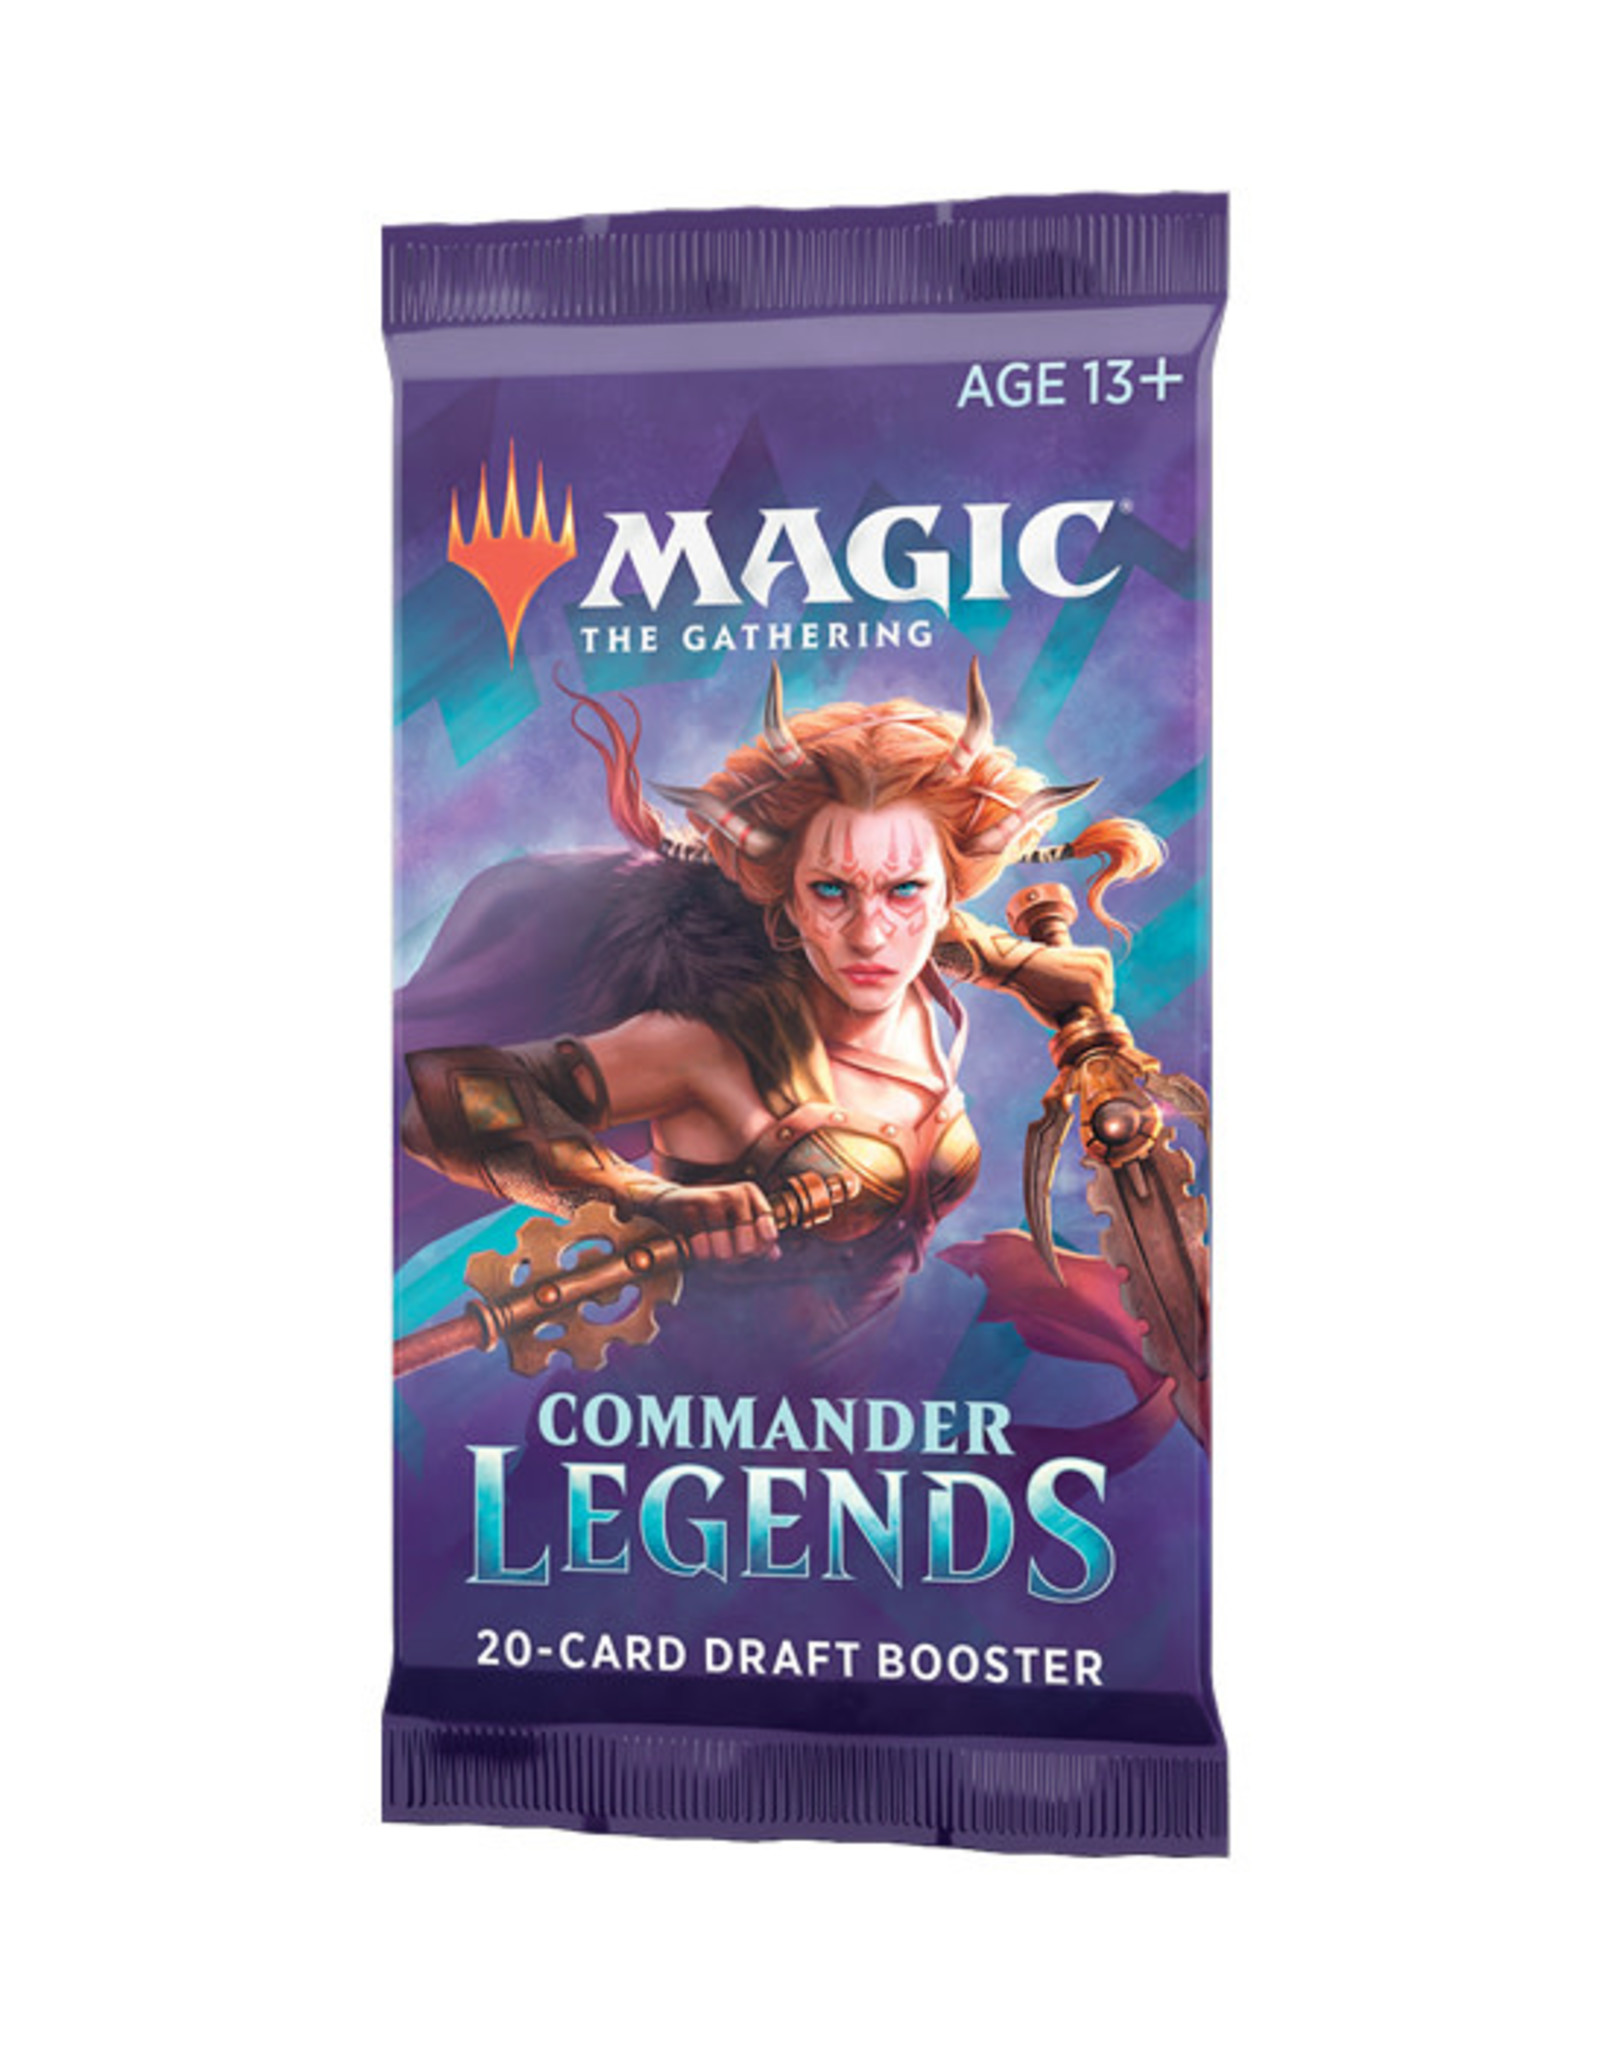 Magic: The Gathering Magic: The Gathering - Commander Legends - Draft Booster Pack